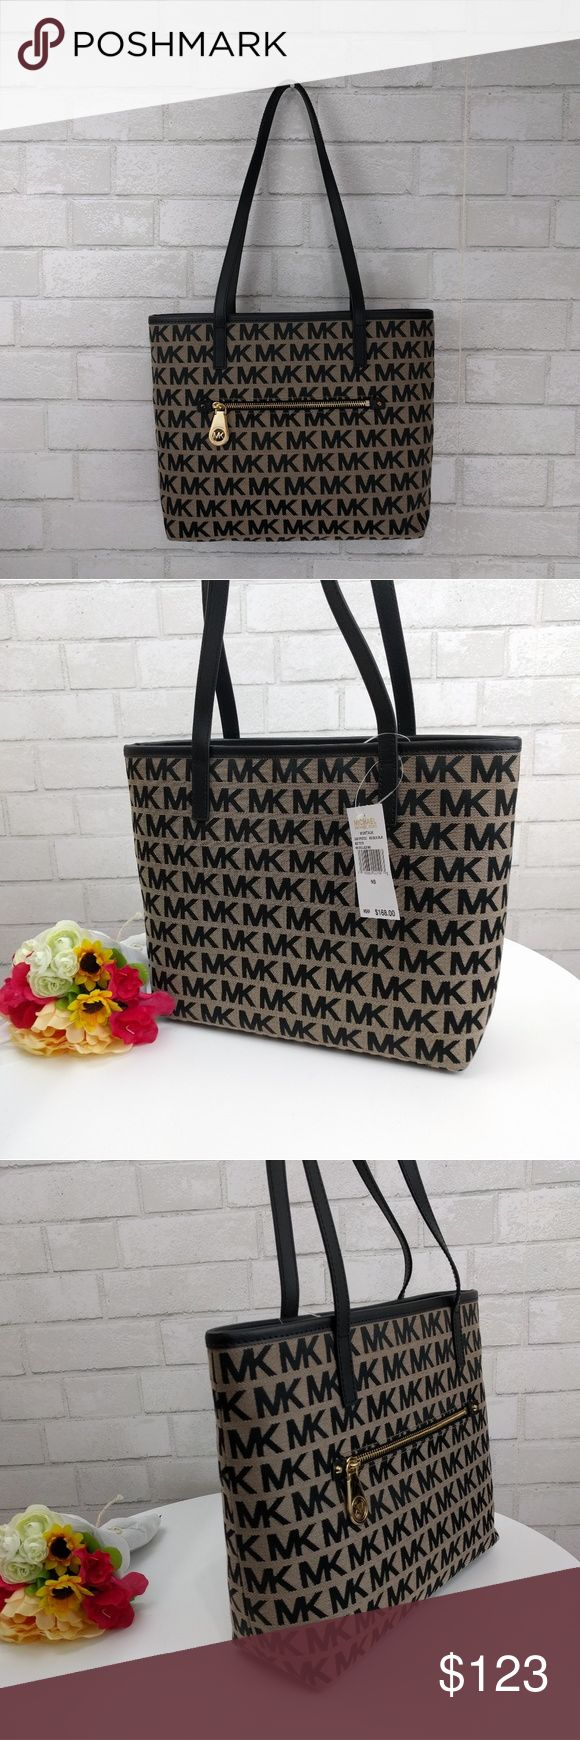 "NWT Michael Kors Signature Beige Montauk Tote 100% Authentic. Comes with Michael Kors care card.   Montauk Beige Black Medium Tote 12"" W X 10""H X 4""D Strap drop 11"" Zipper outside Inside has 2 sleeves, zipper pocket and cellphone pocket Zipper closure Material is stain and water resistant MRSP $168  FAST SHIPPER Pet and smoke free home Michael Kors Bags"